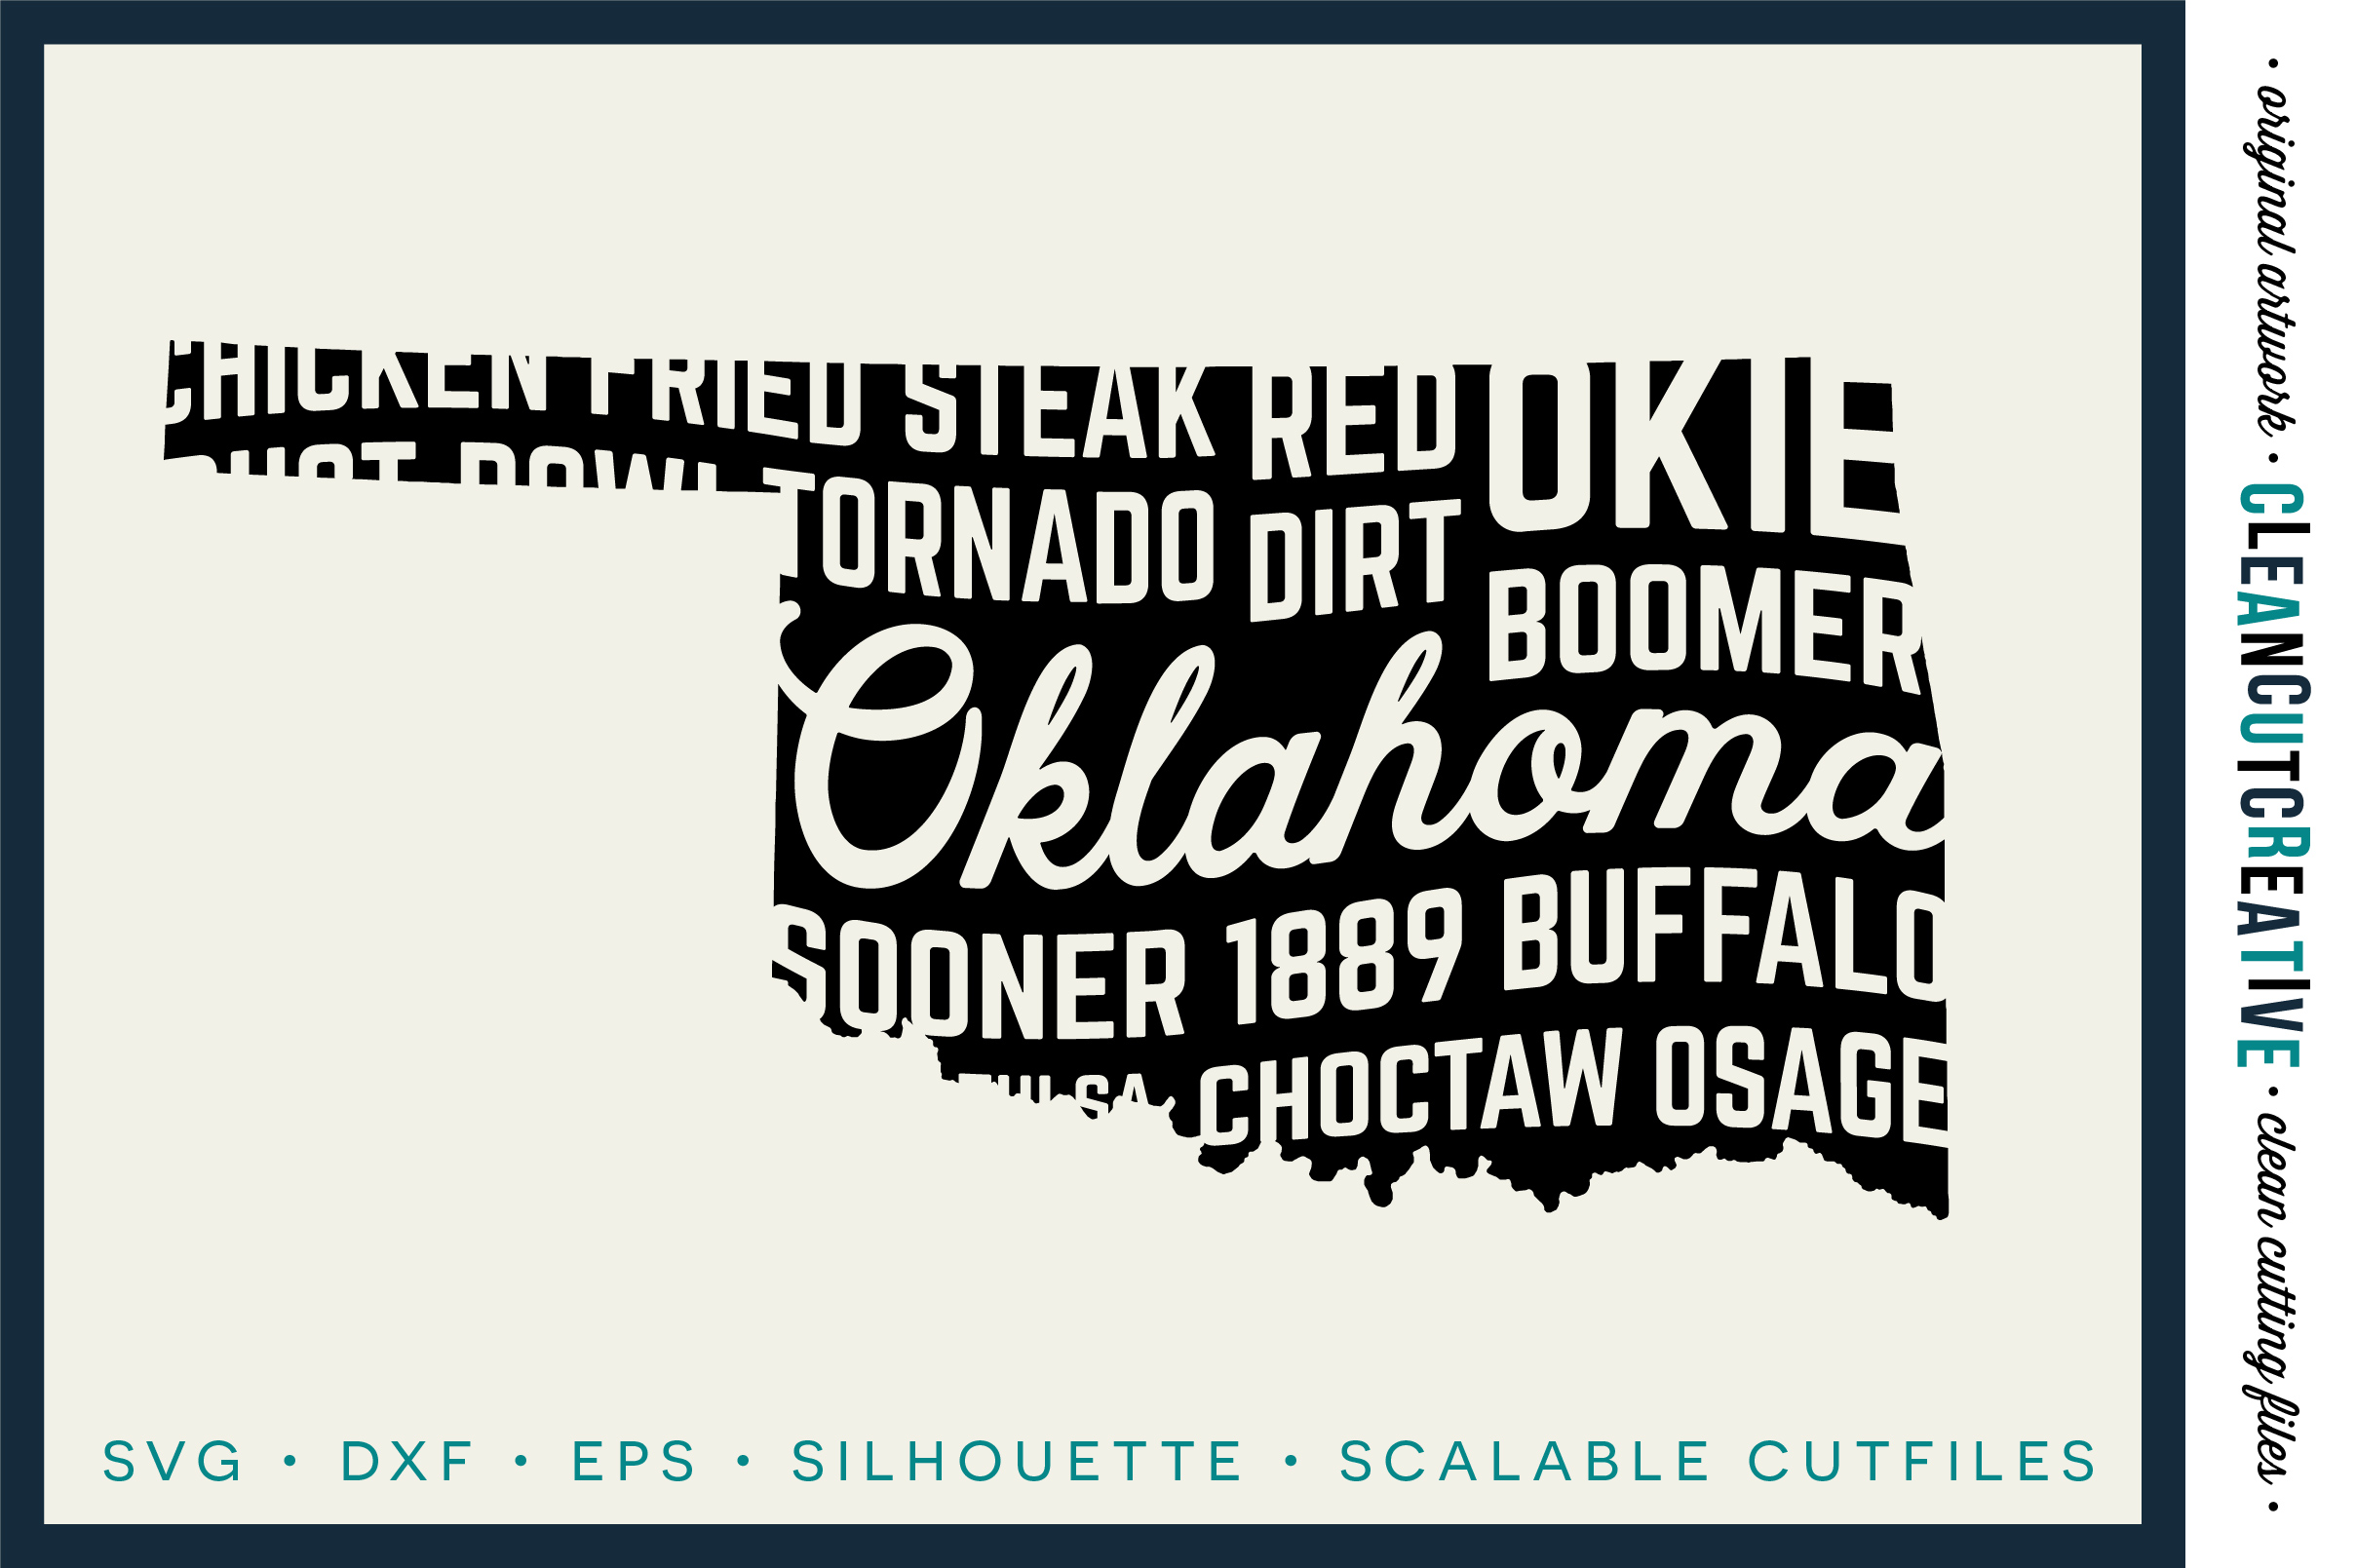 Oklahoma State design - SVG DXF EPS PNG - Cricut & Silhouette - clean cutting files example image 1